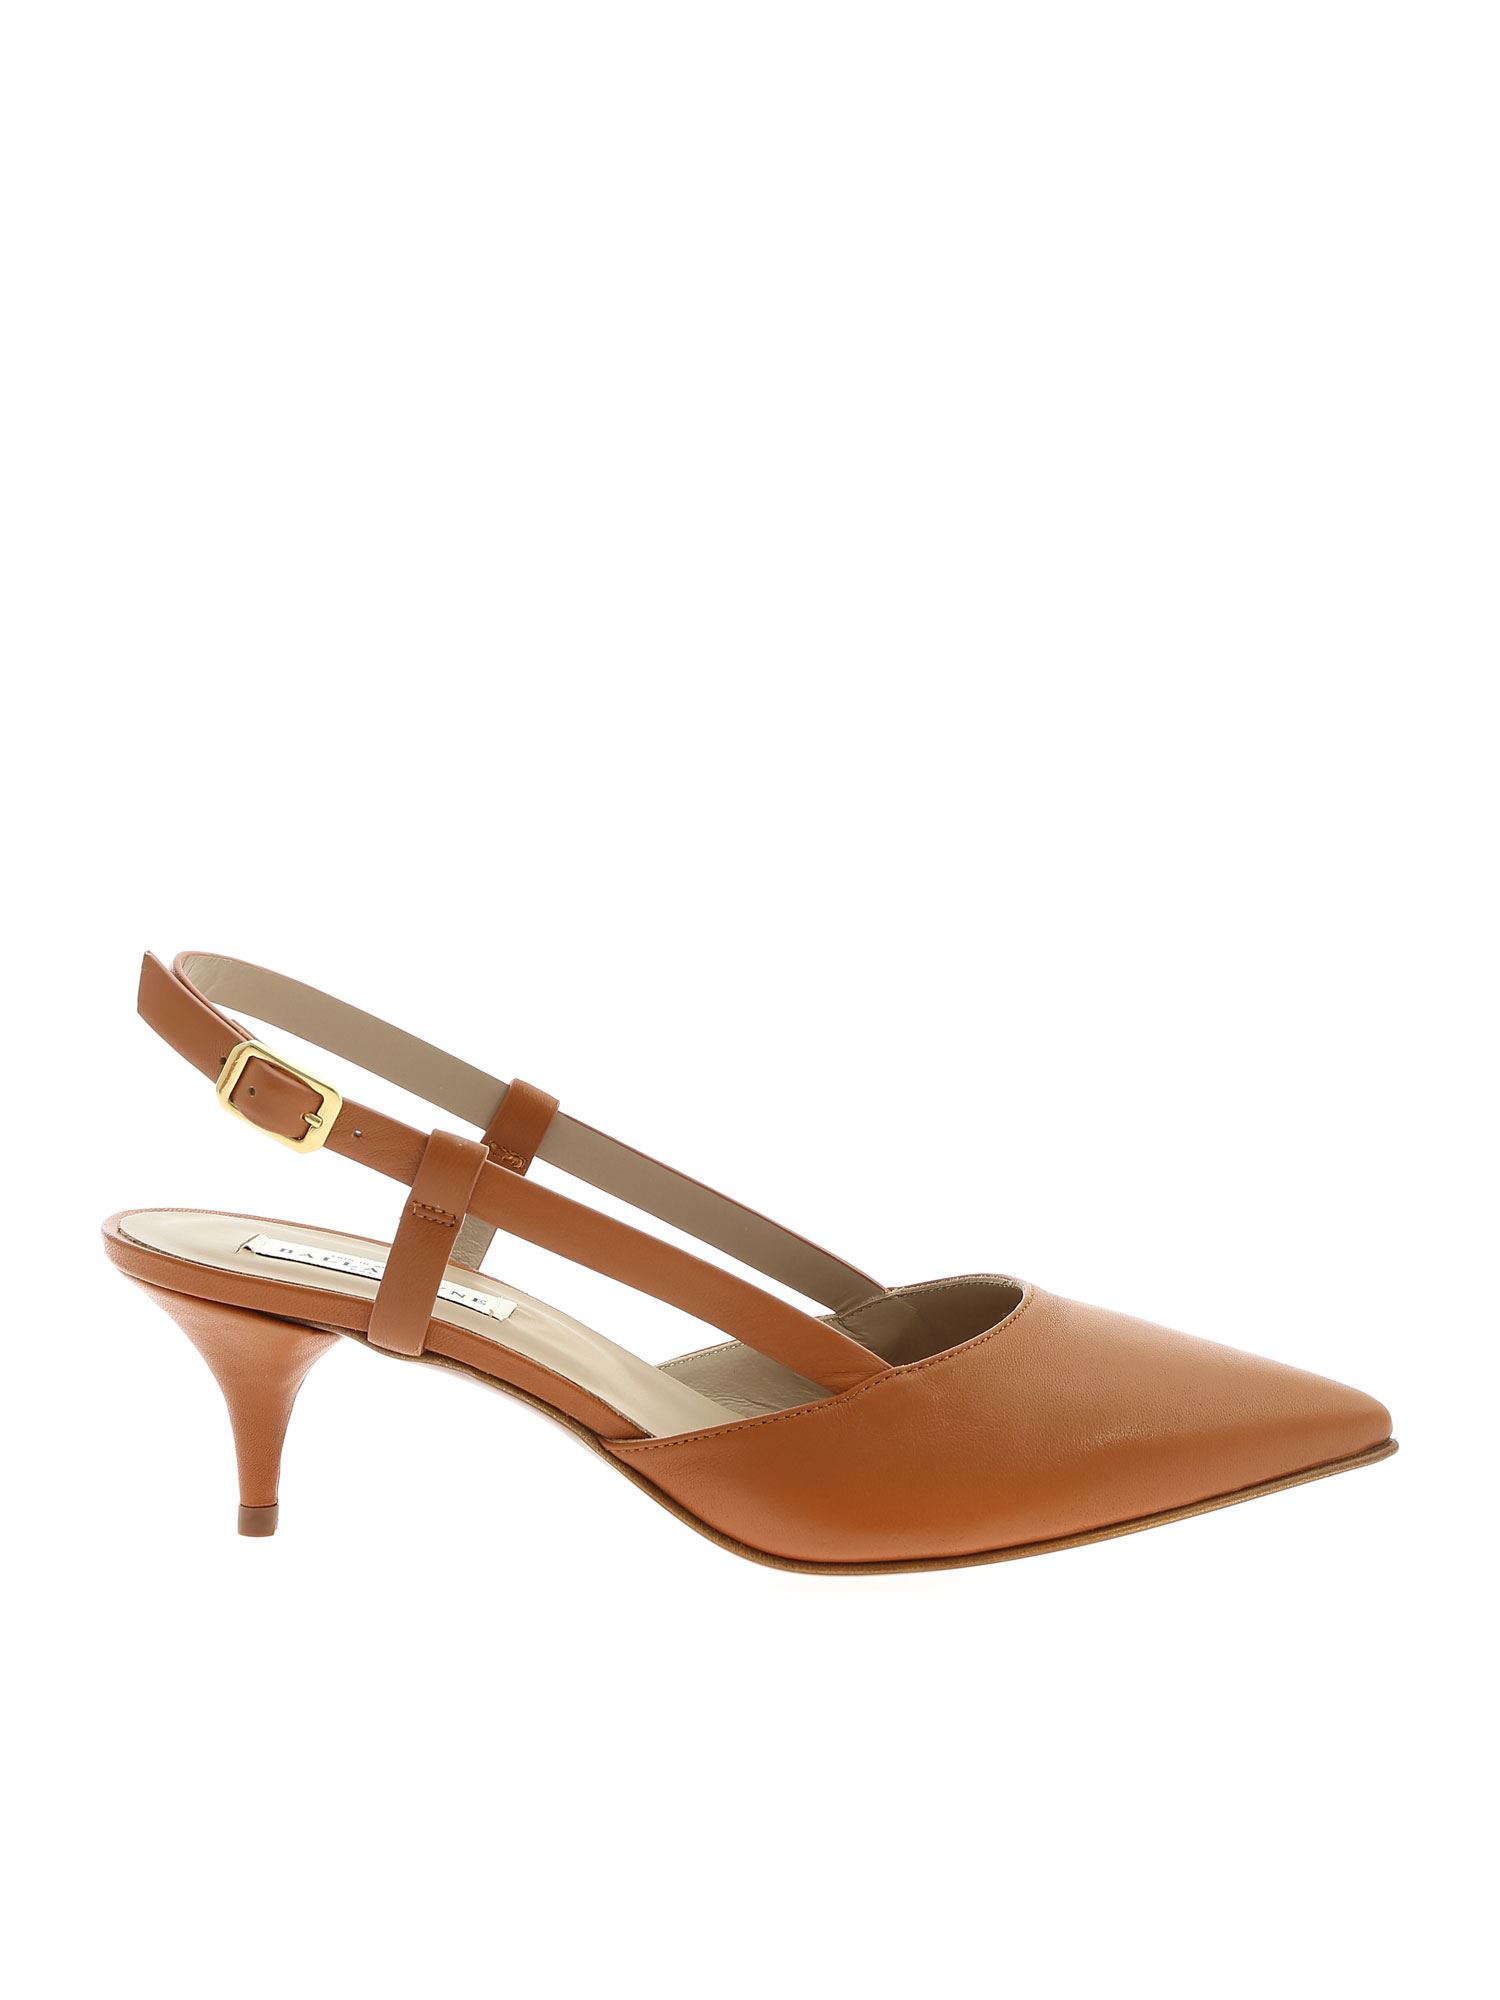 Ballantyne COCCIO HEELED SLINGBACKS IN TAN COLOR